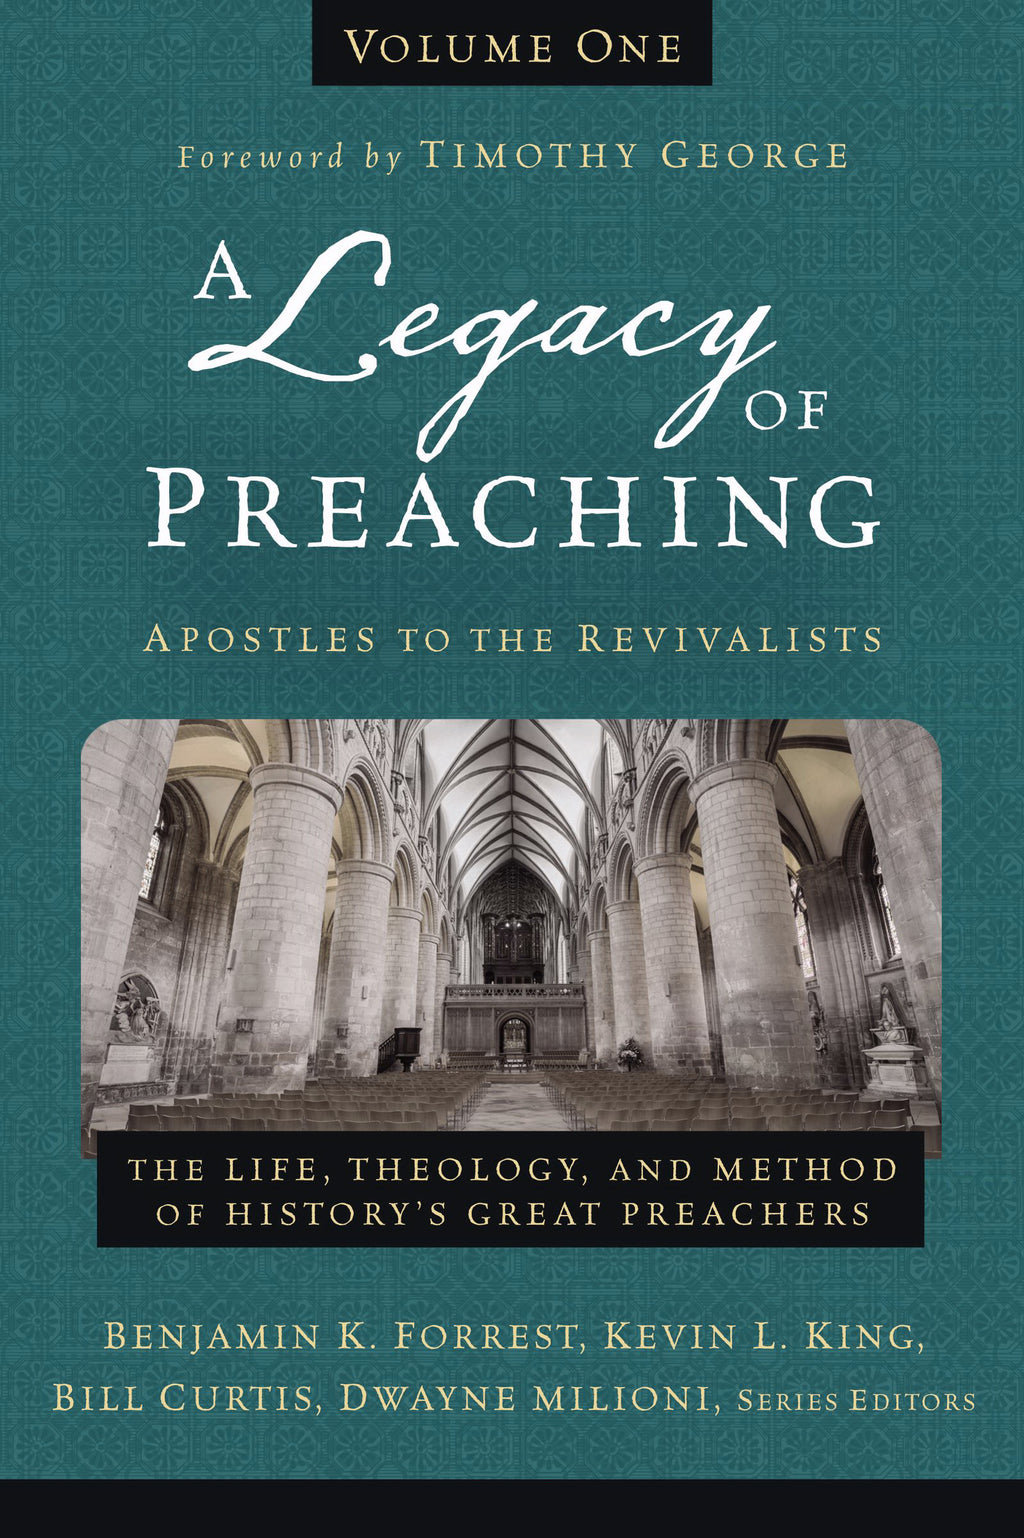 A Legacy Of Preaching: Apostles To The Revivalists (Volume One)